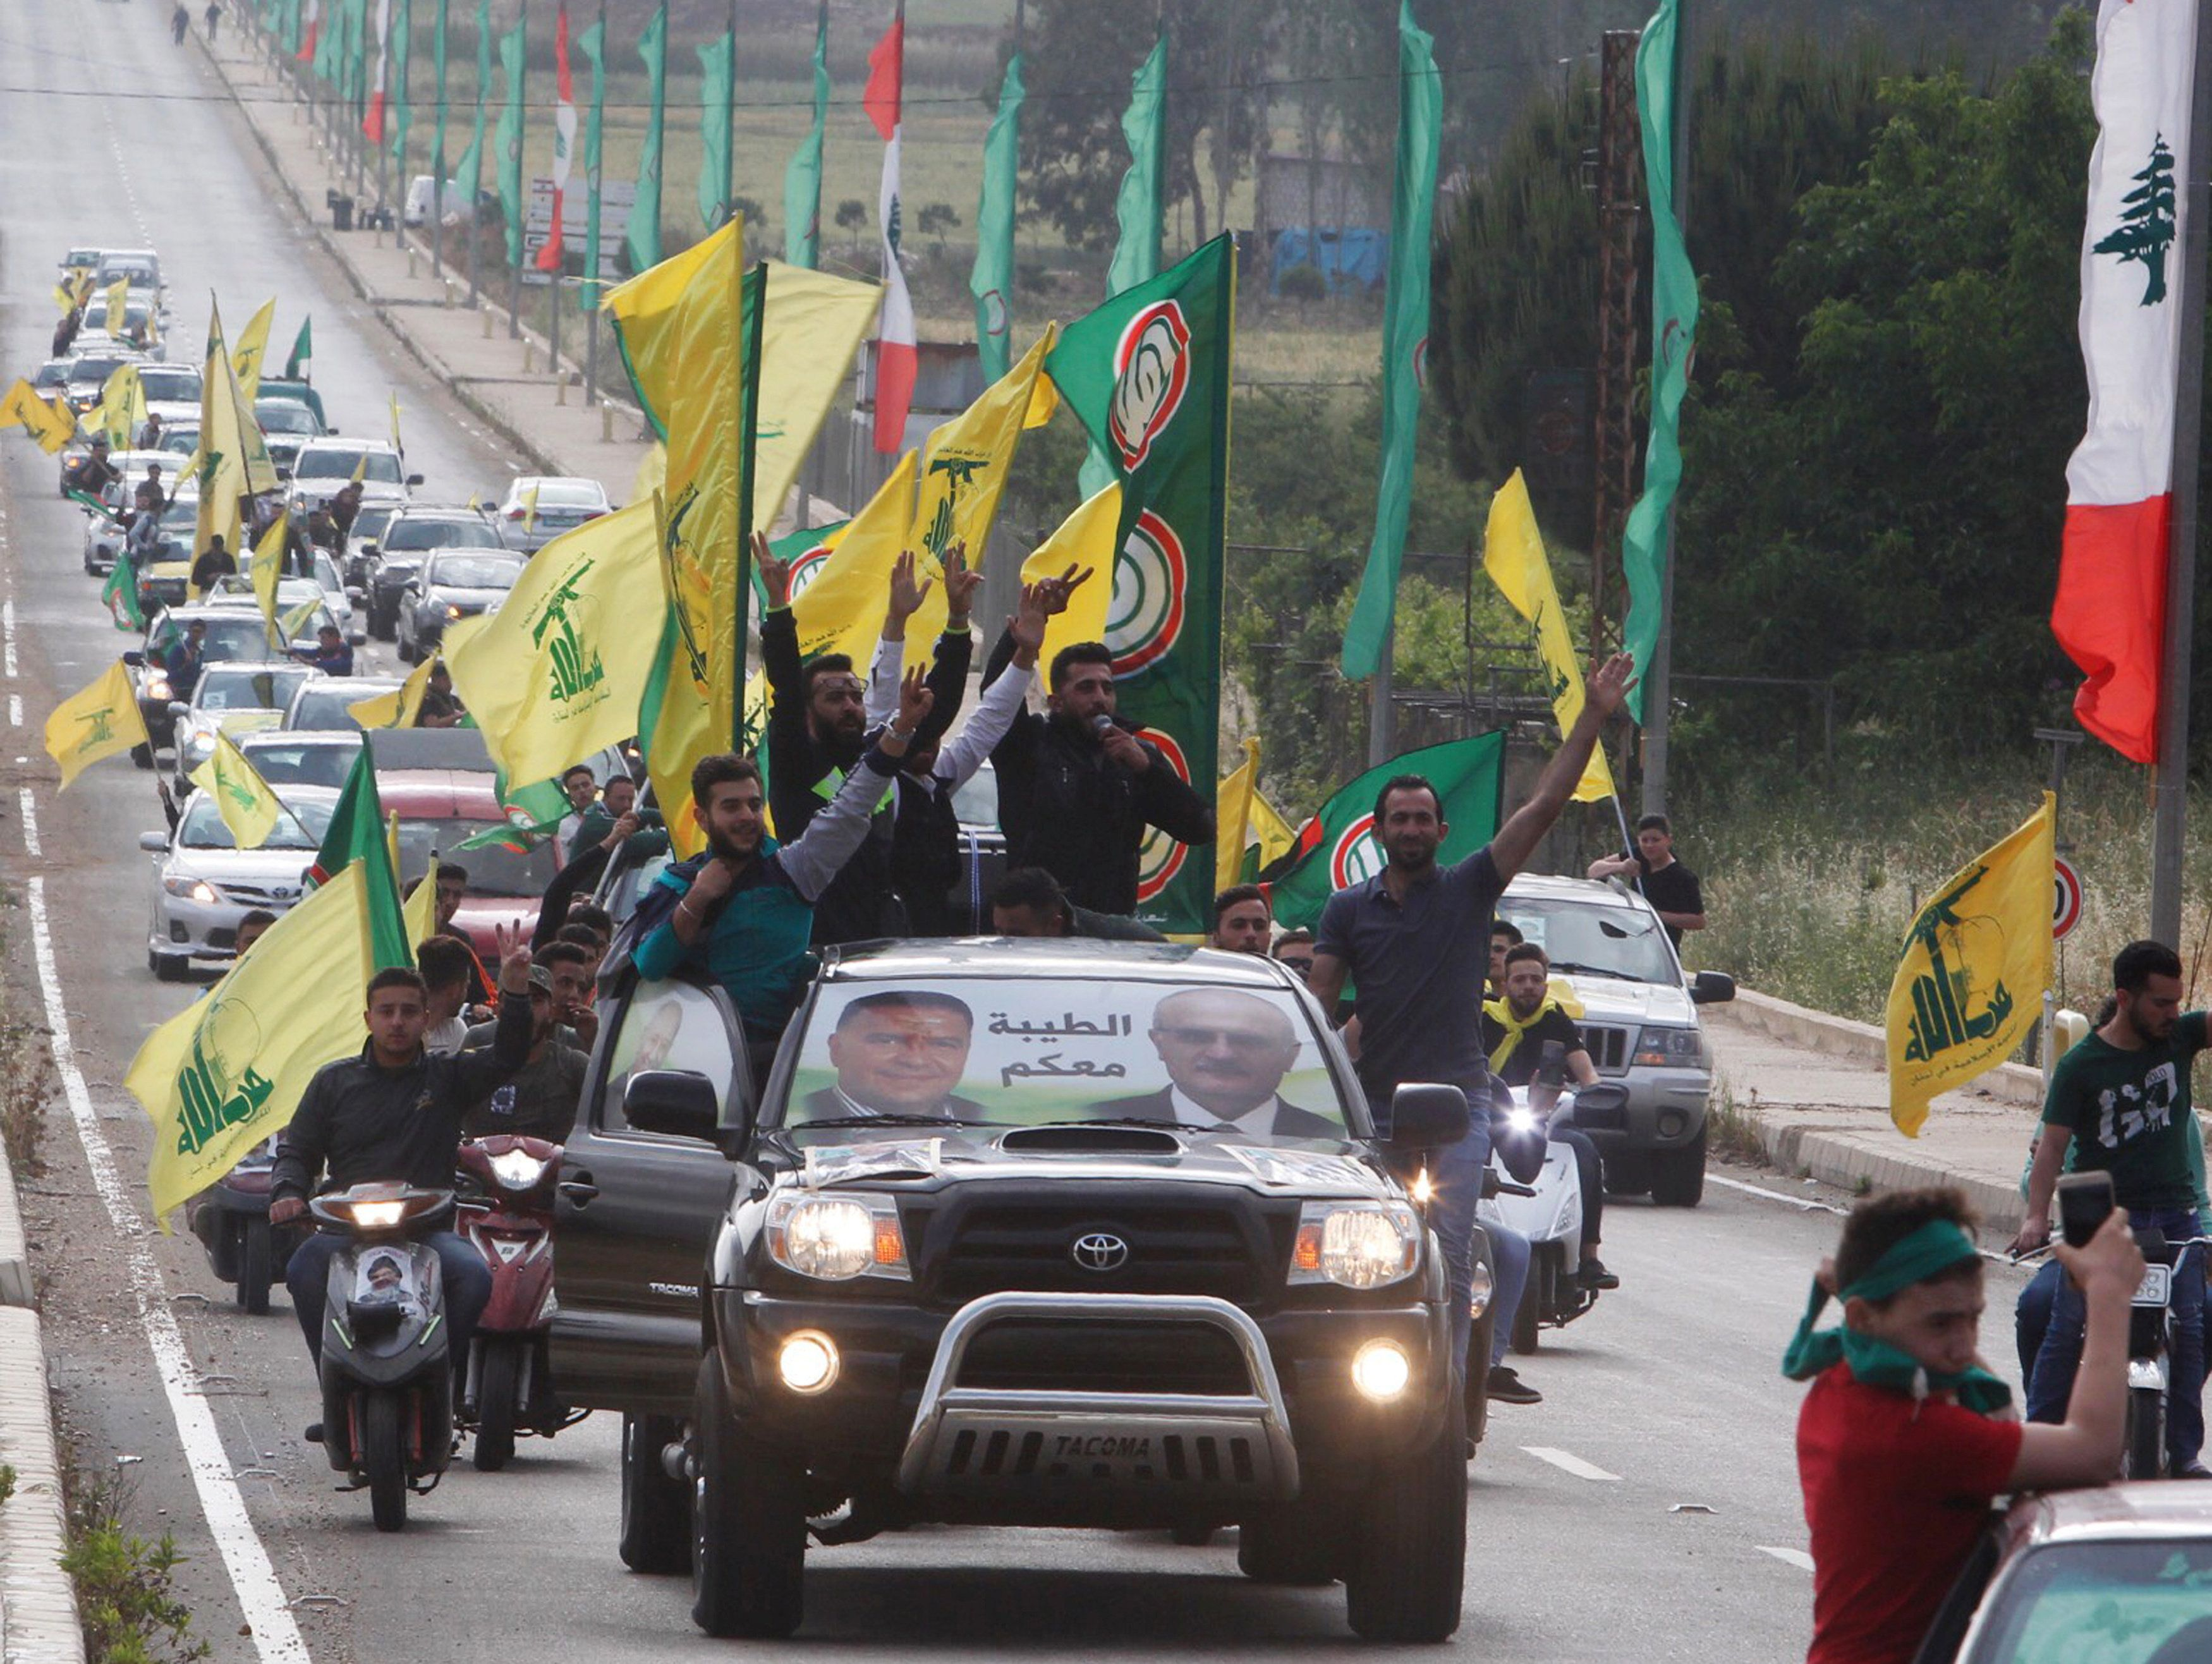 Supporters of Lebanon's Hezbollah and Amal Movement gesture as they ride in a car in Marjayoun, Lebanon May 7, 2018.